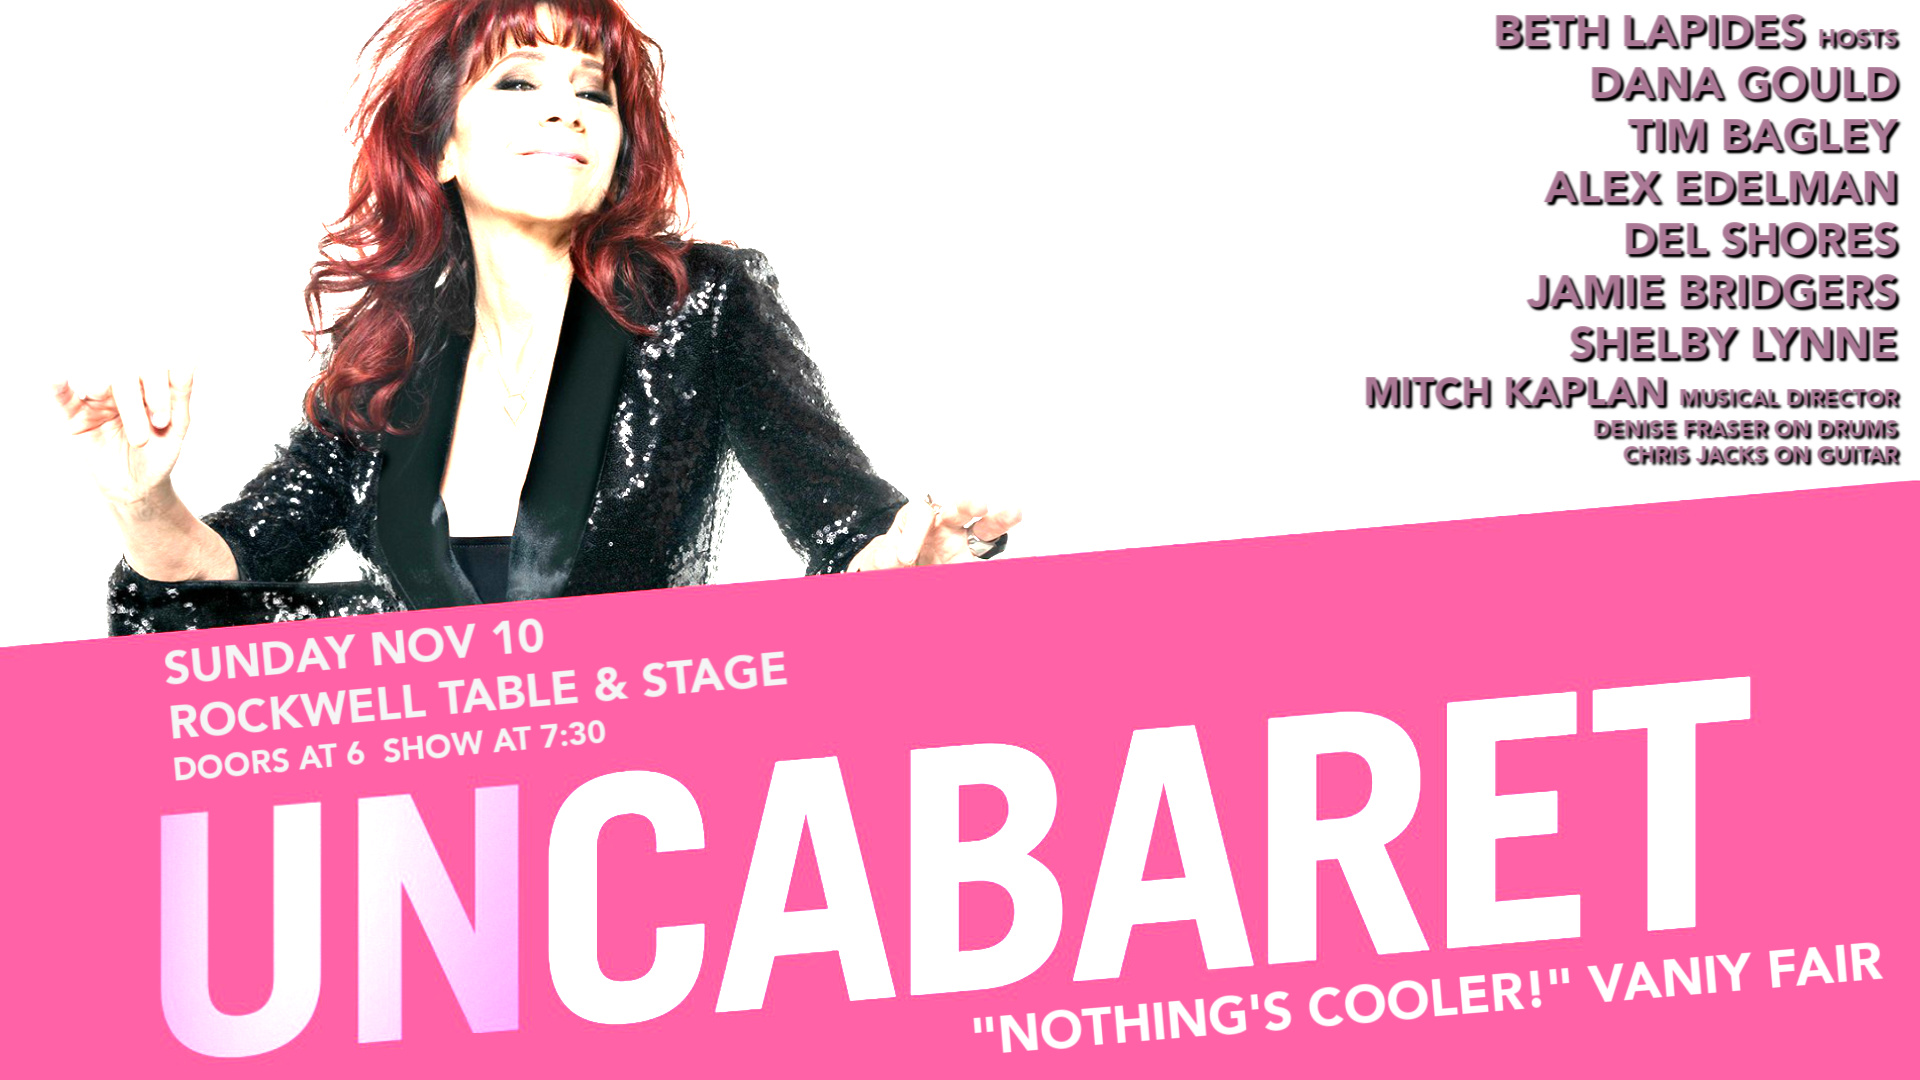 UnCabaret October 13 at Rockwell in Los Angeles featuring the funniest stand up storytelling alternative comedy